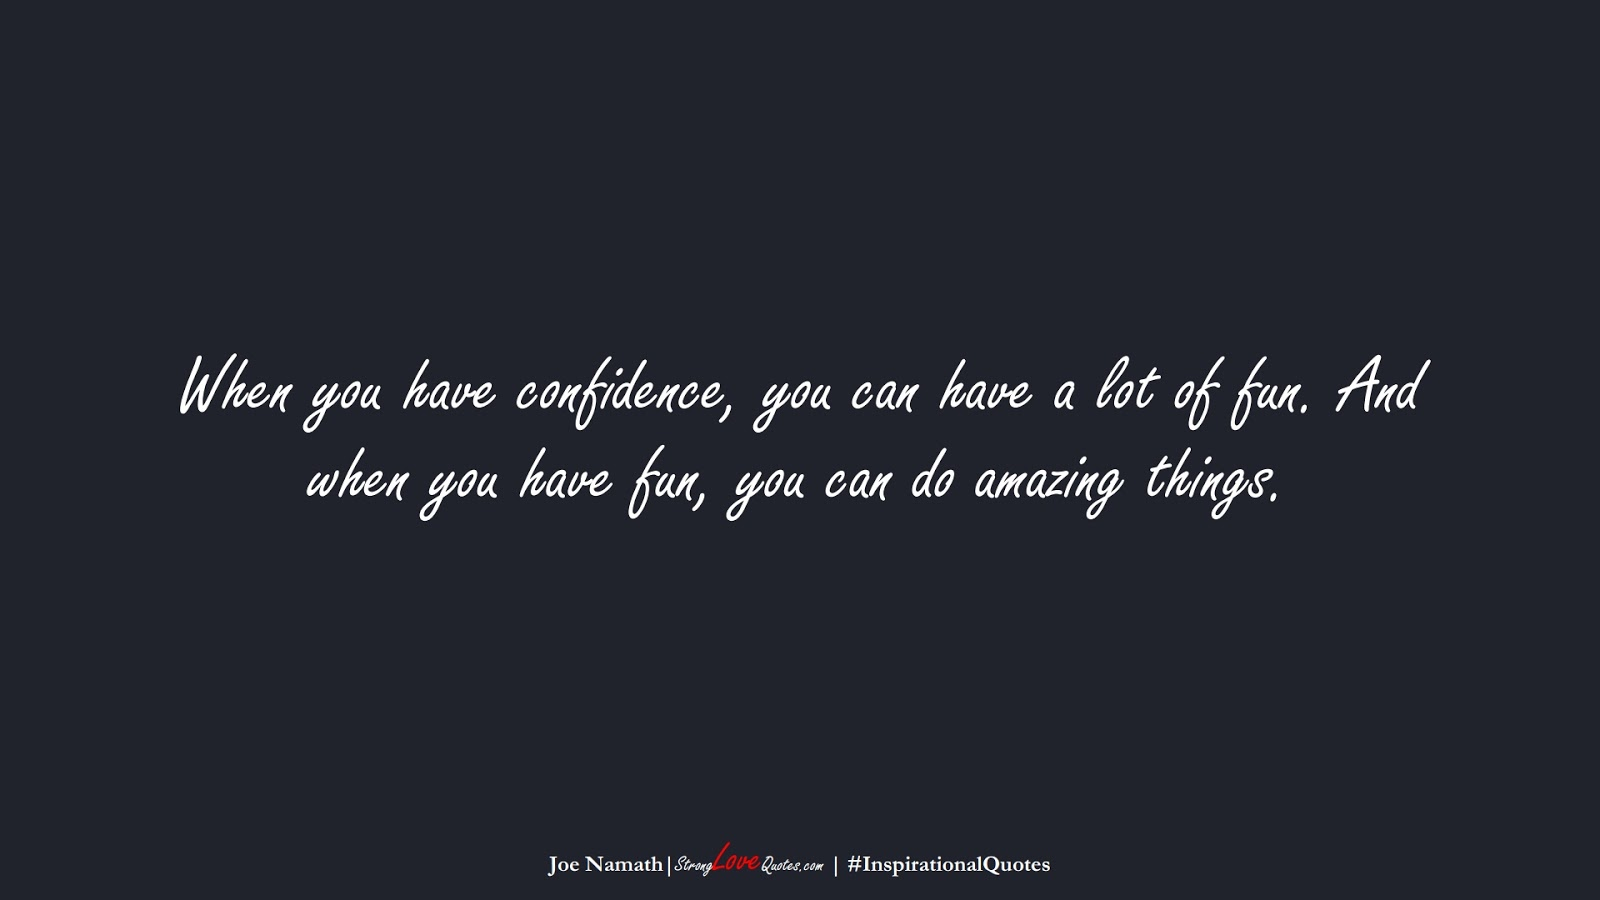 When you have confidence, you can have a lot of fun. And when you have fun, you can do amazing things. (Joe Namath);  #InspirationalQuotes